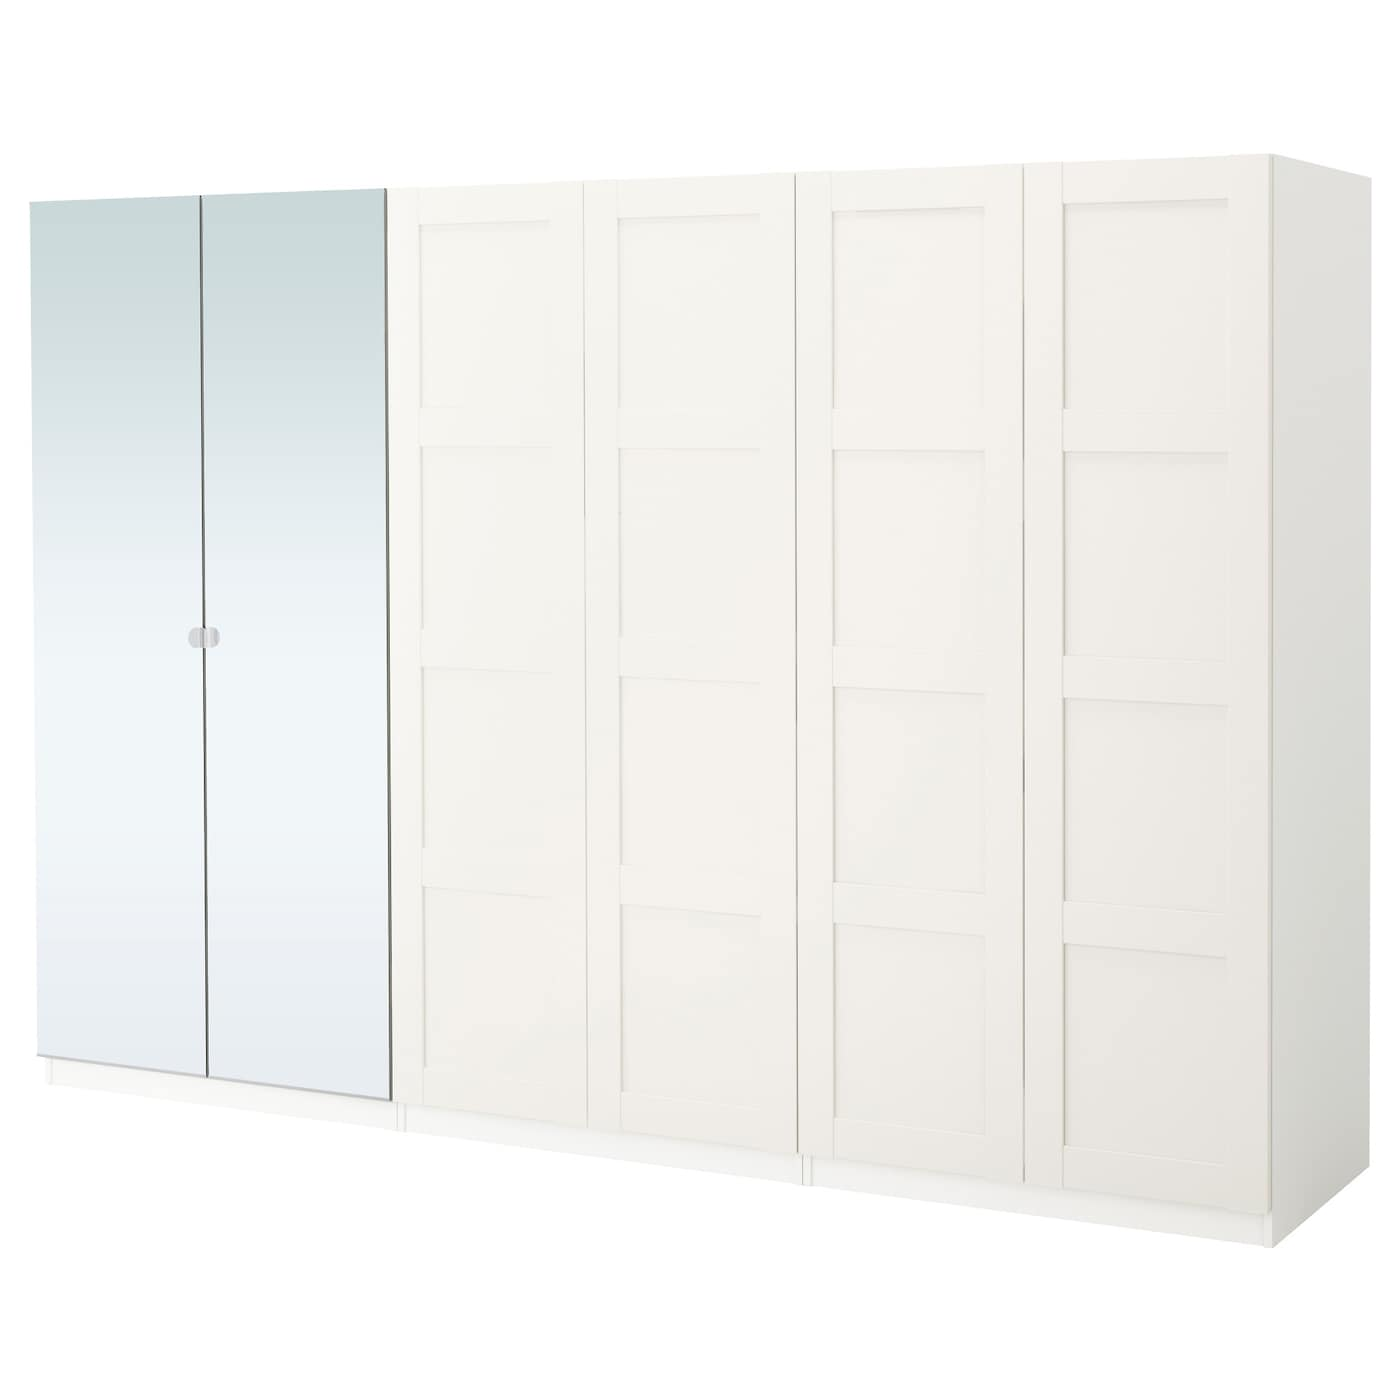 pax wardrobe white bergsbo vikedal 300 x 60 x 201 cm ikea. Black Bedroom Furniture Sets. Home Design Ideas